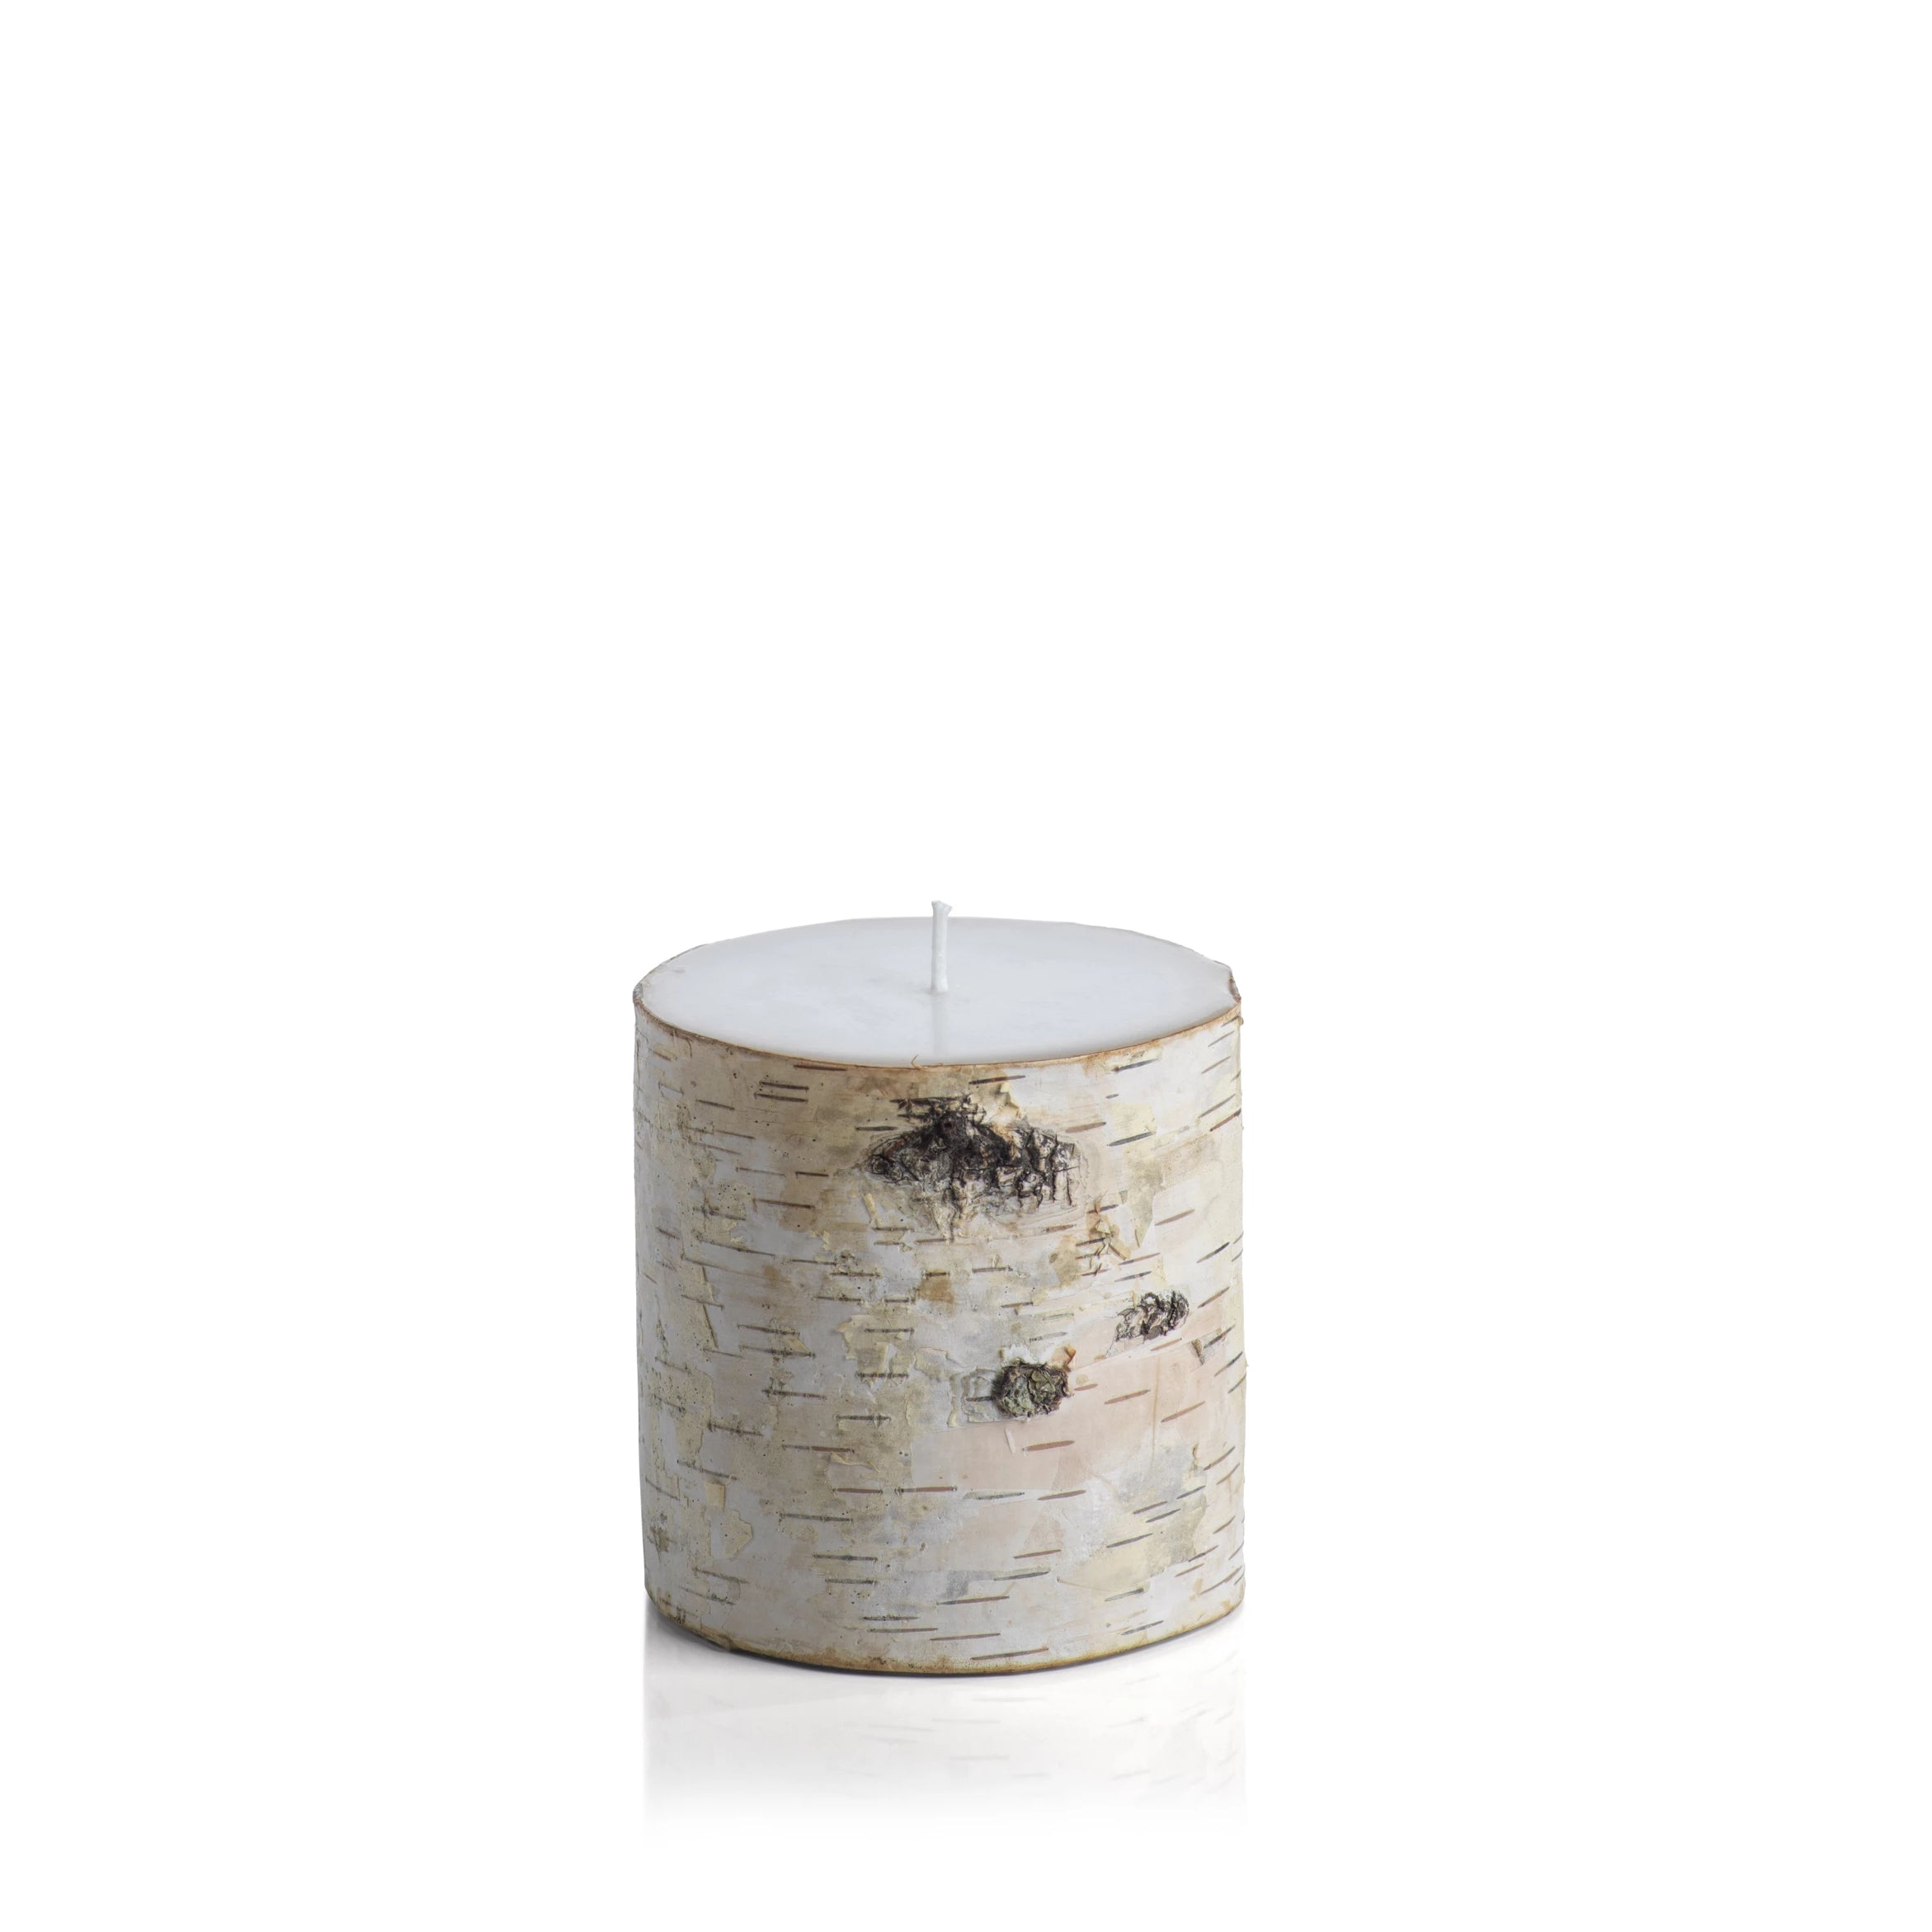 Birchwood Fragrance Free Candles - CARLYLE AVENUE